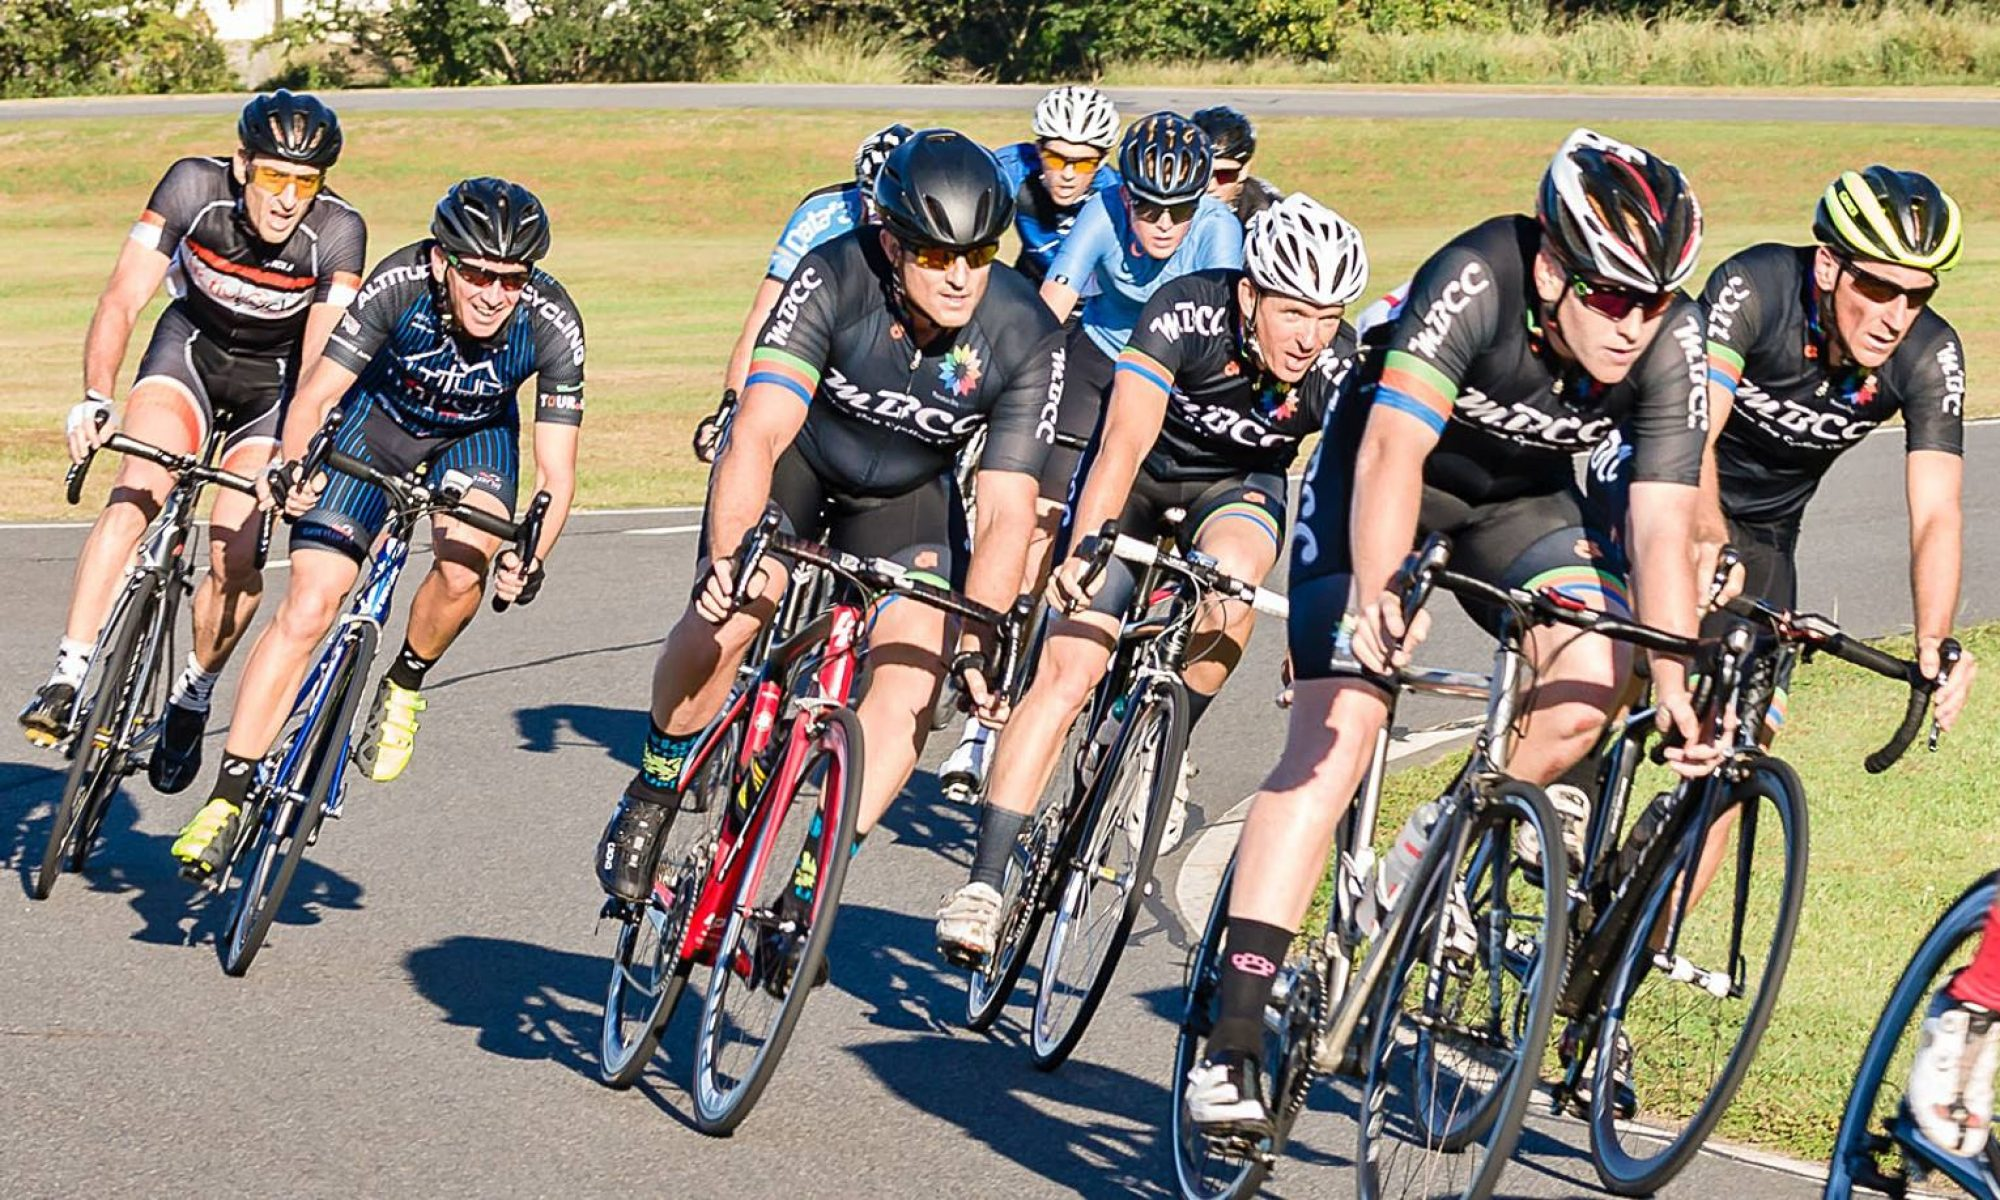 Moreton Bay Cycling Club